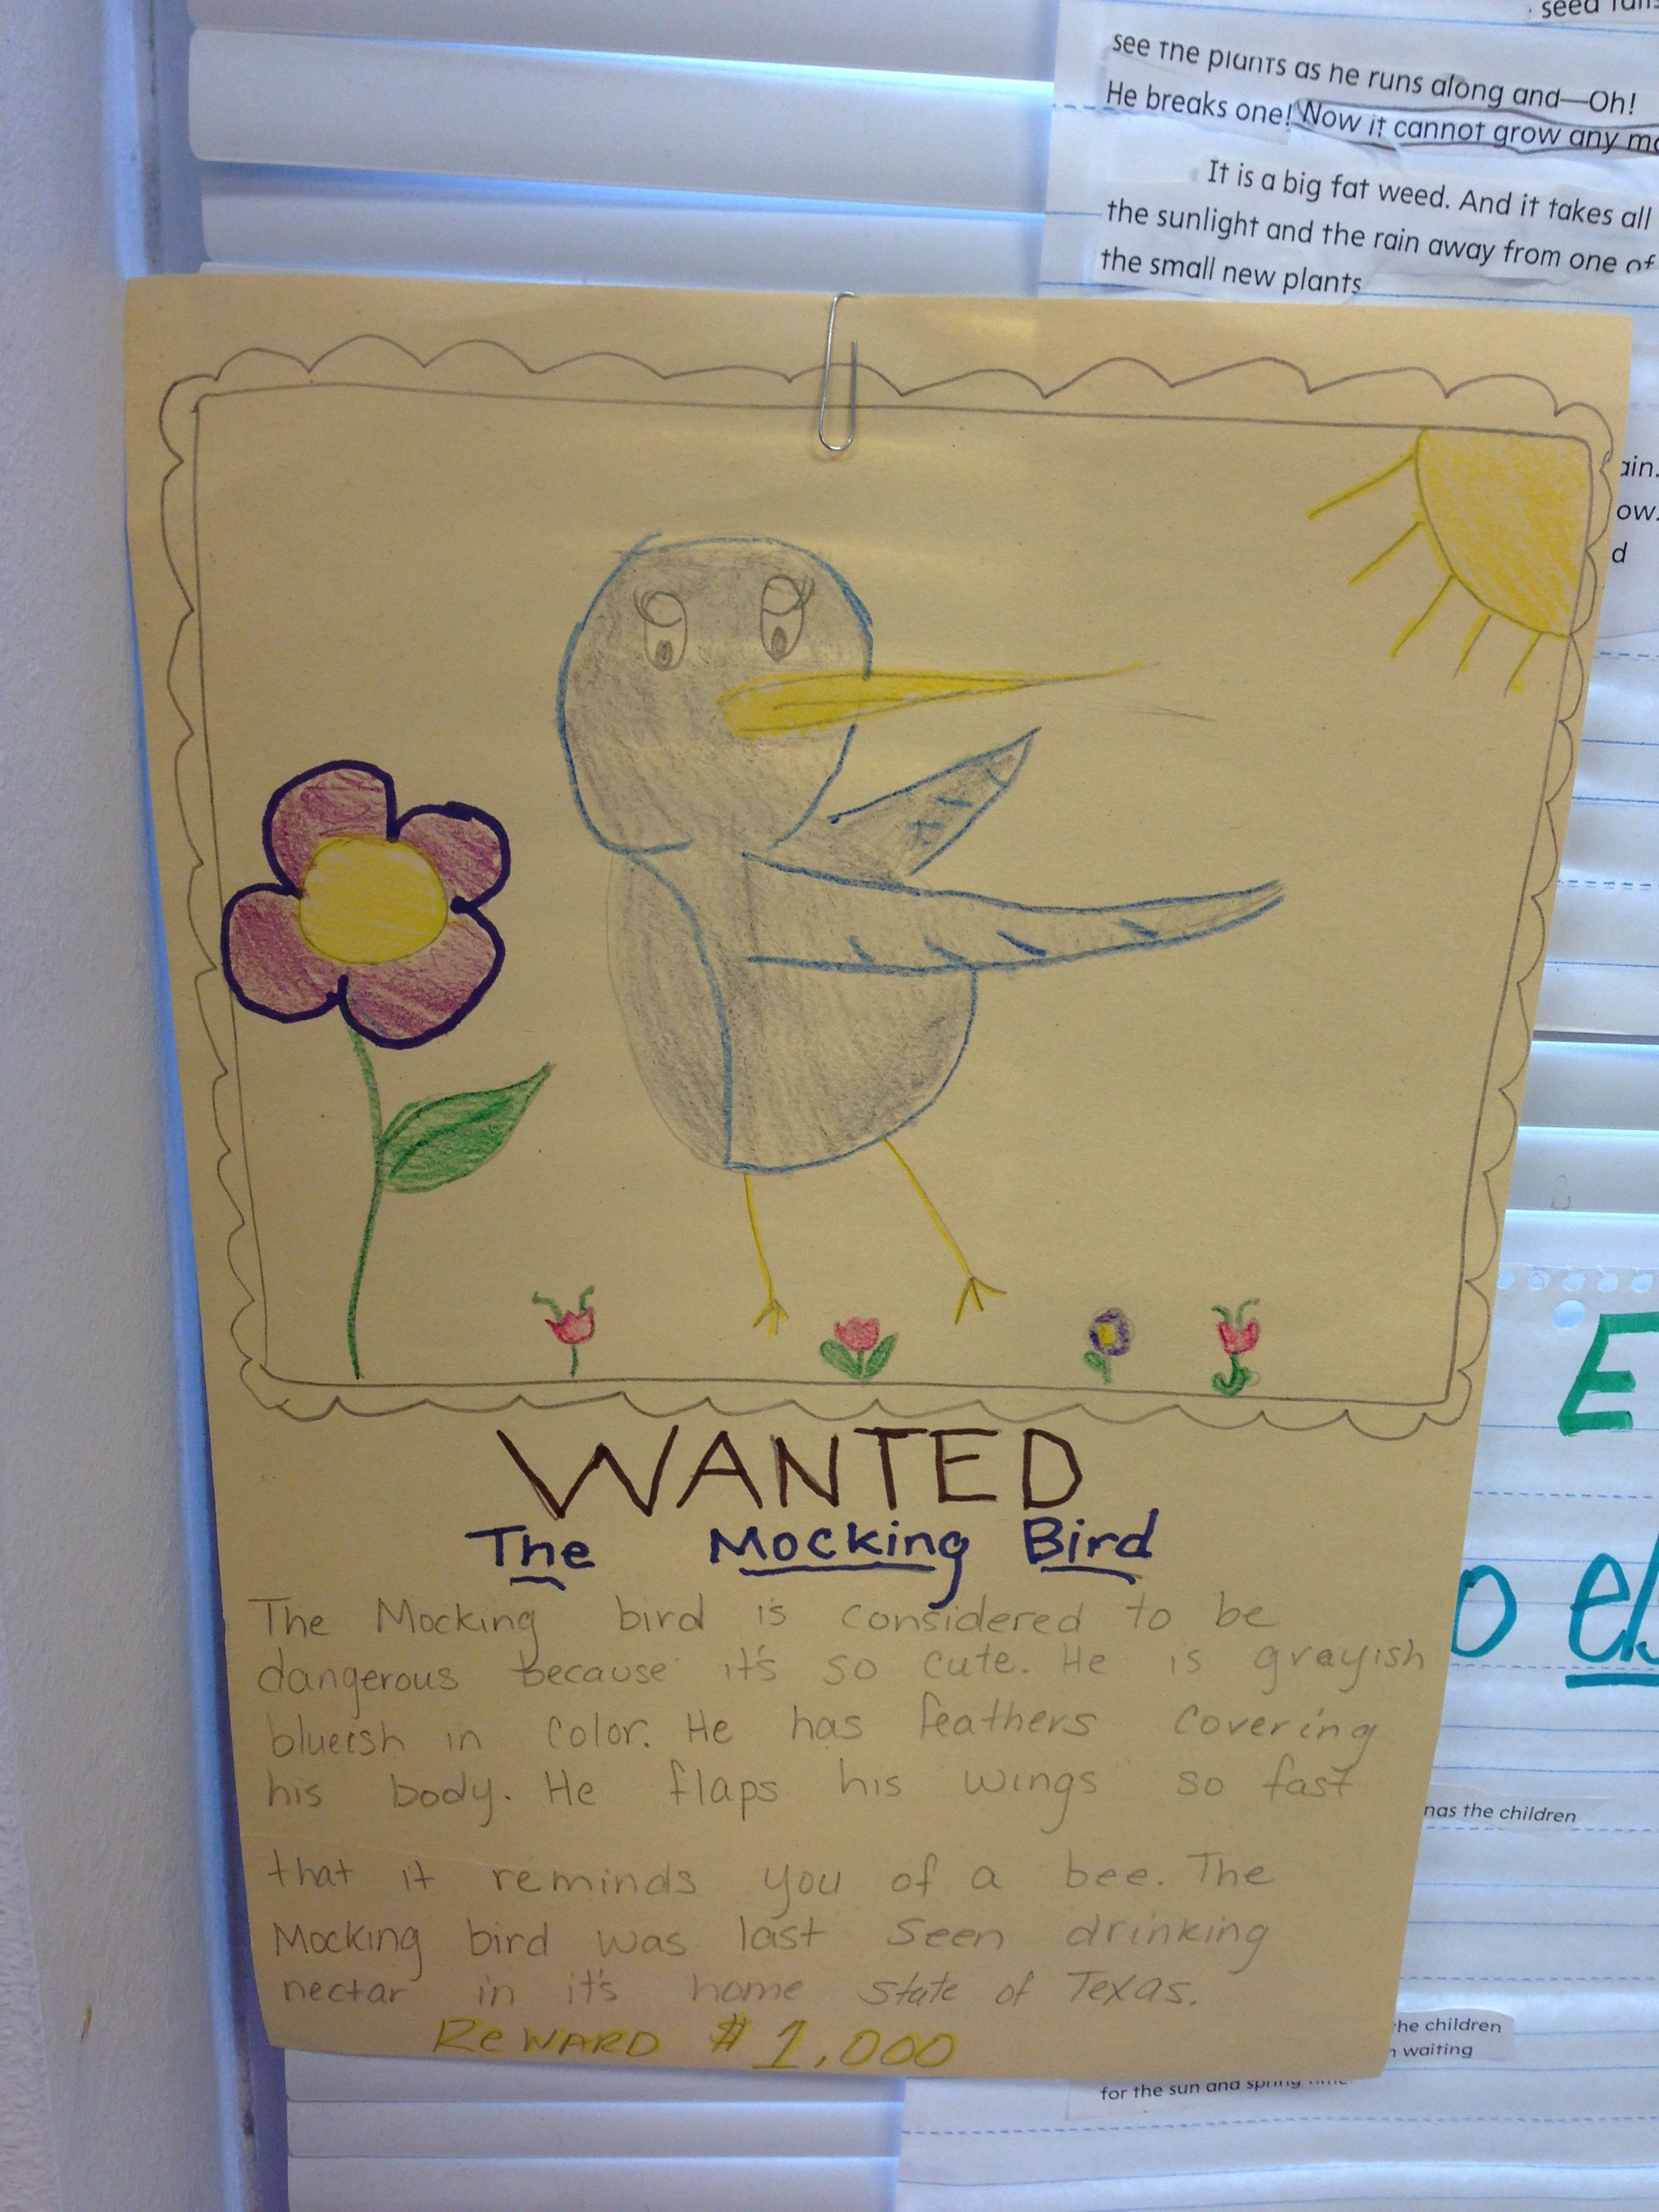 Animal Characteristics Wanted Poster For Endangered